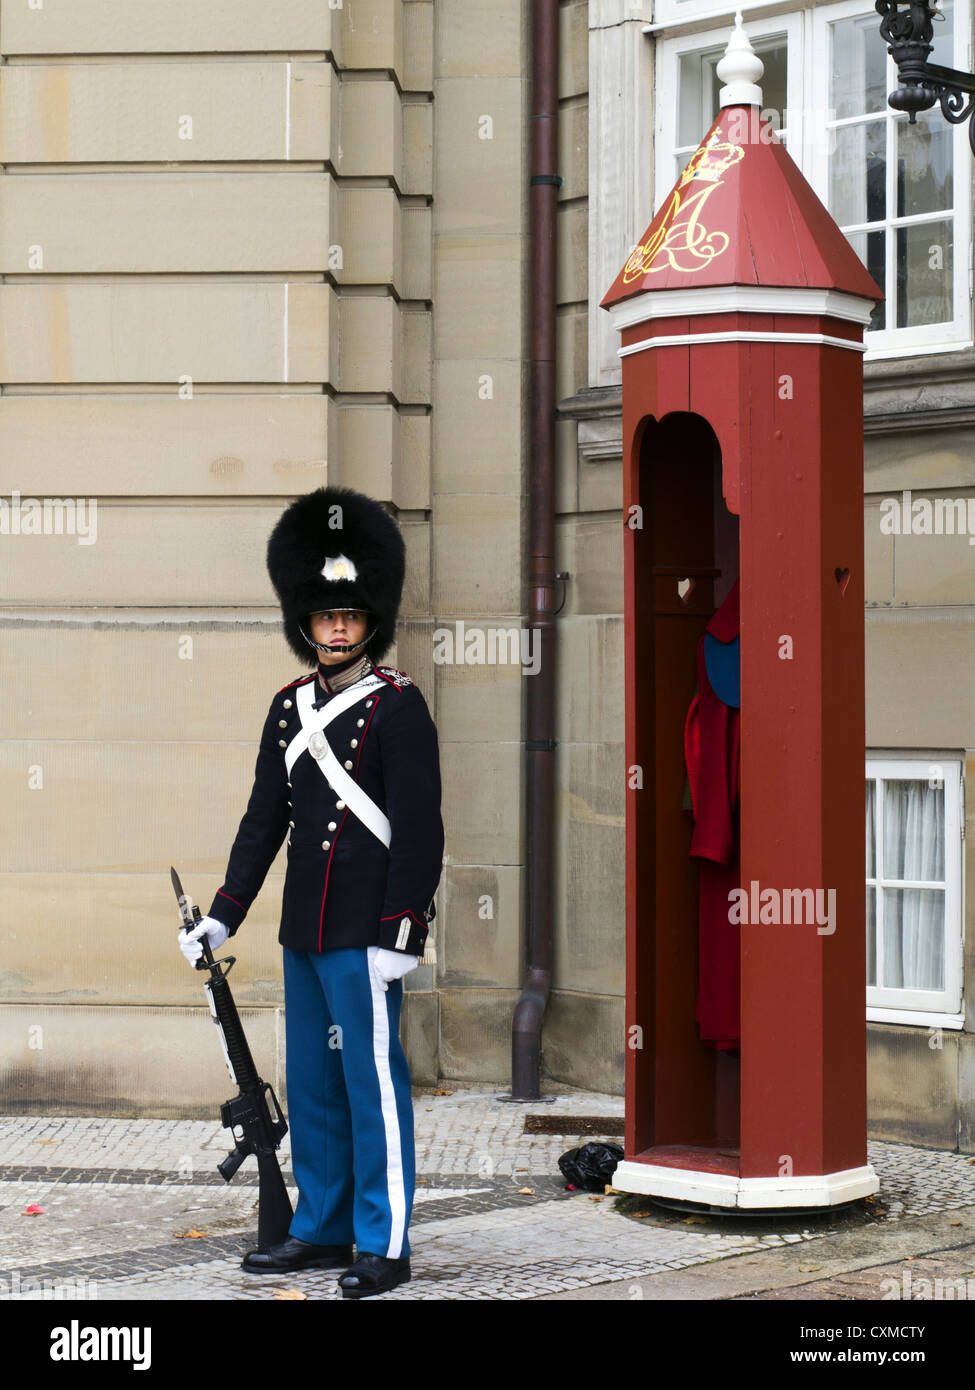 A Danish soldier stands guard outside Amalienborg, the winter home of the Danish royal family, Copenhagen, Denmark Stock Photo